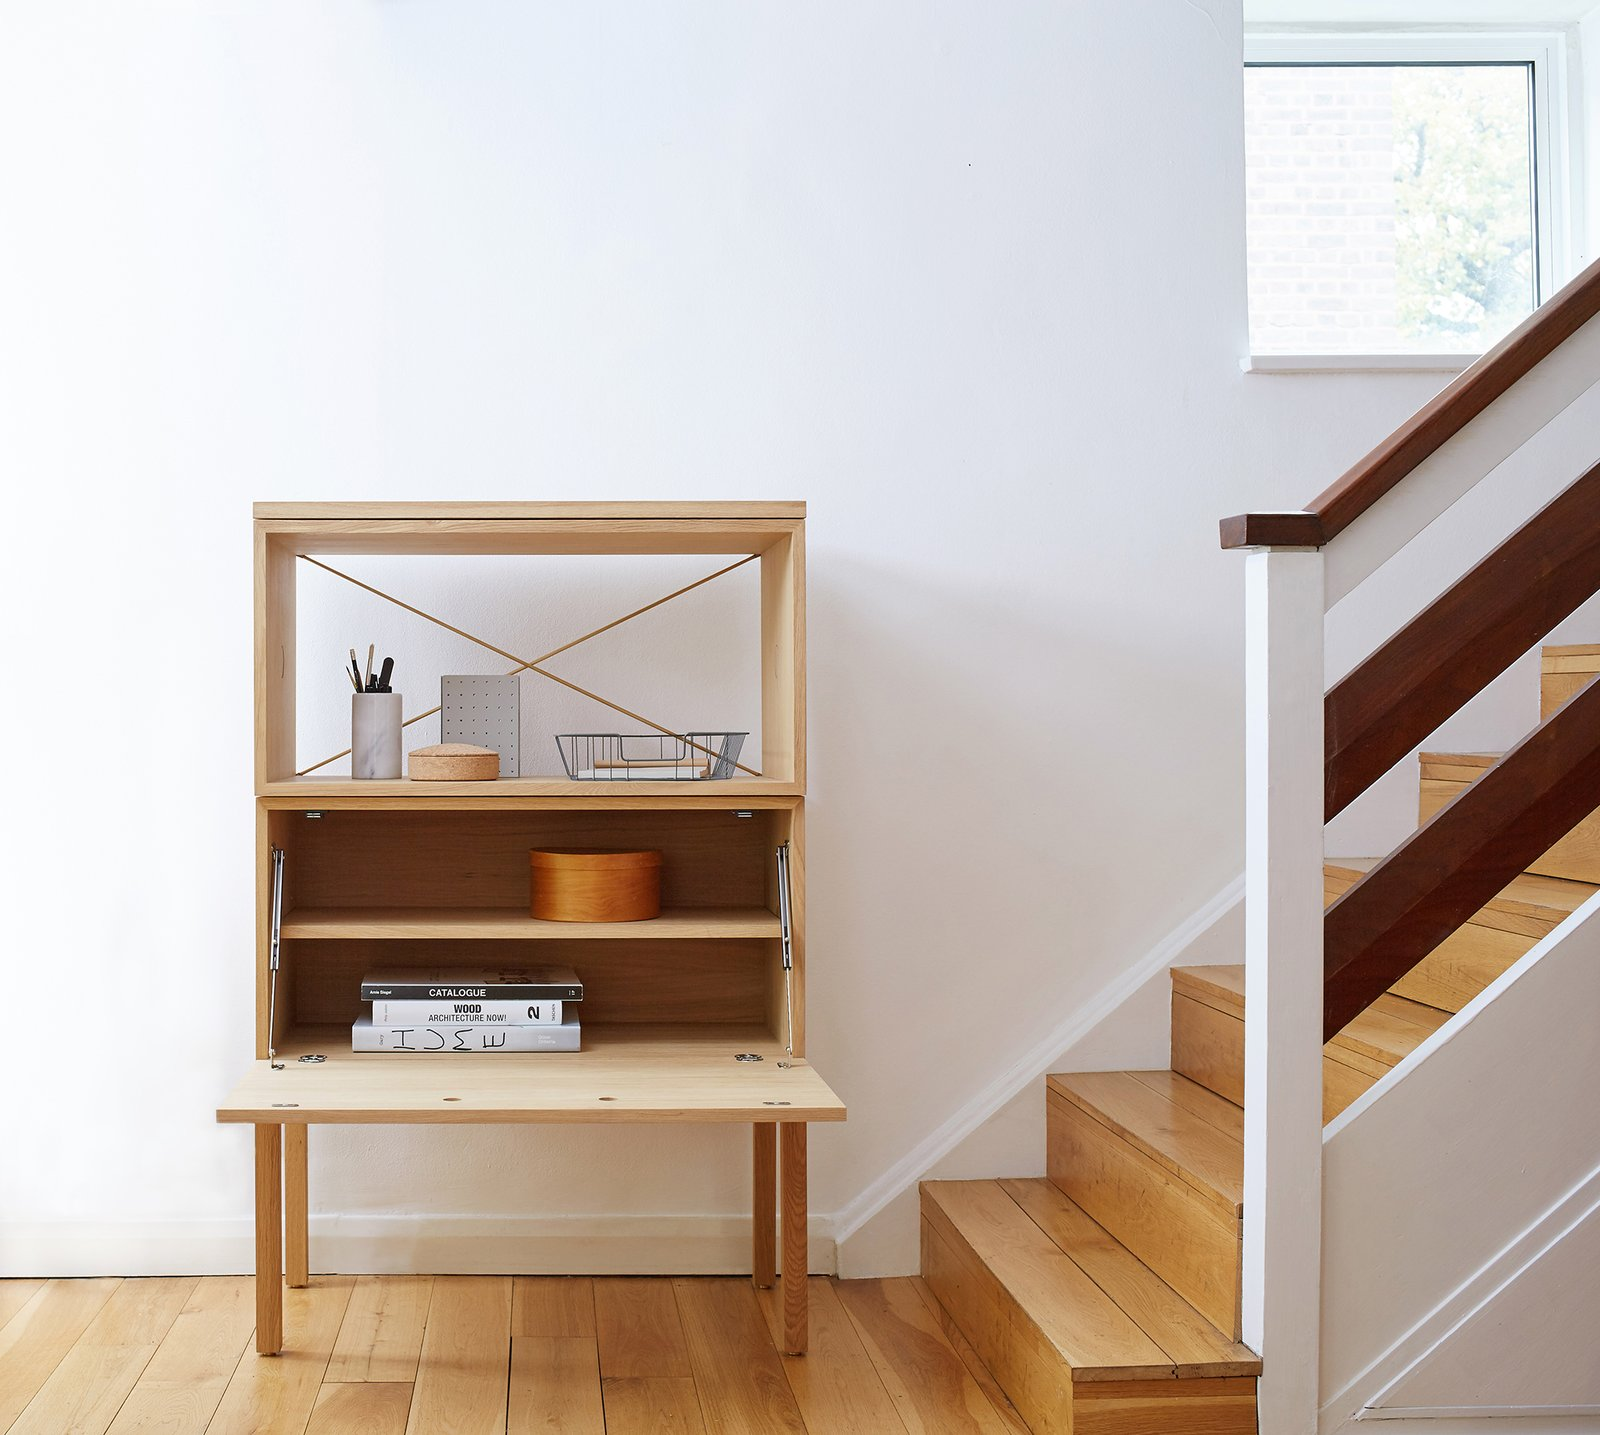 British brand Beynon specializes in clever adaptions of accessible 1950s modular furniture, like their compact bureau with removable shelves.  Shape-Shifters: Modular Furniture by Heather Corcoran from Awesome Modular Furniture for Customizing Your Home